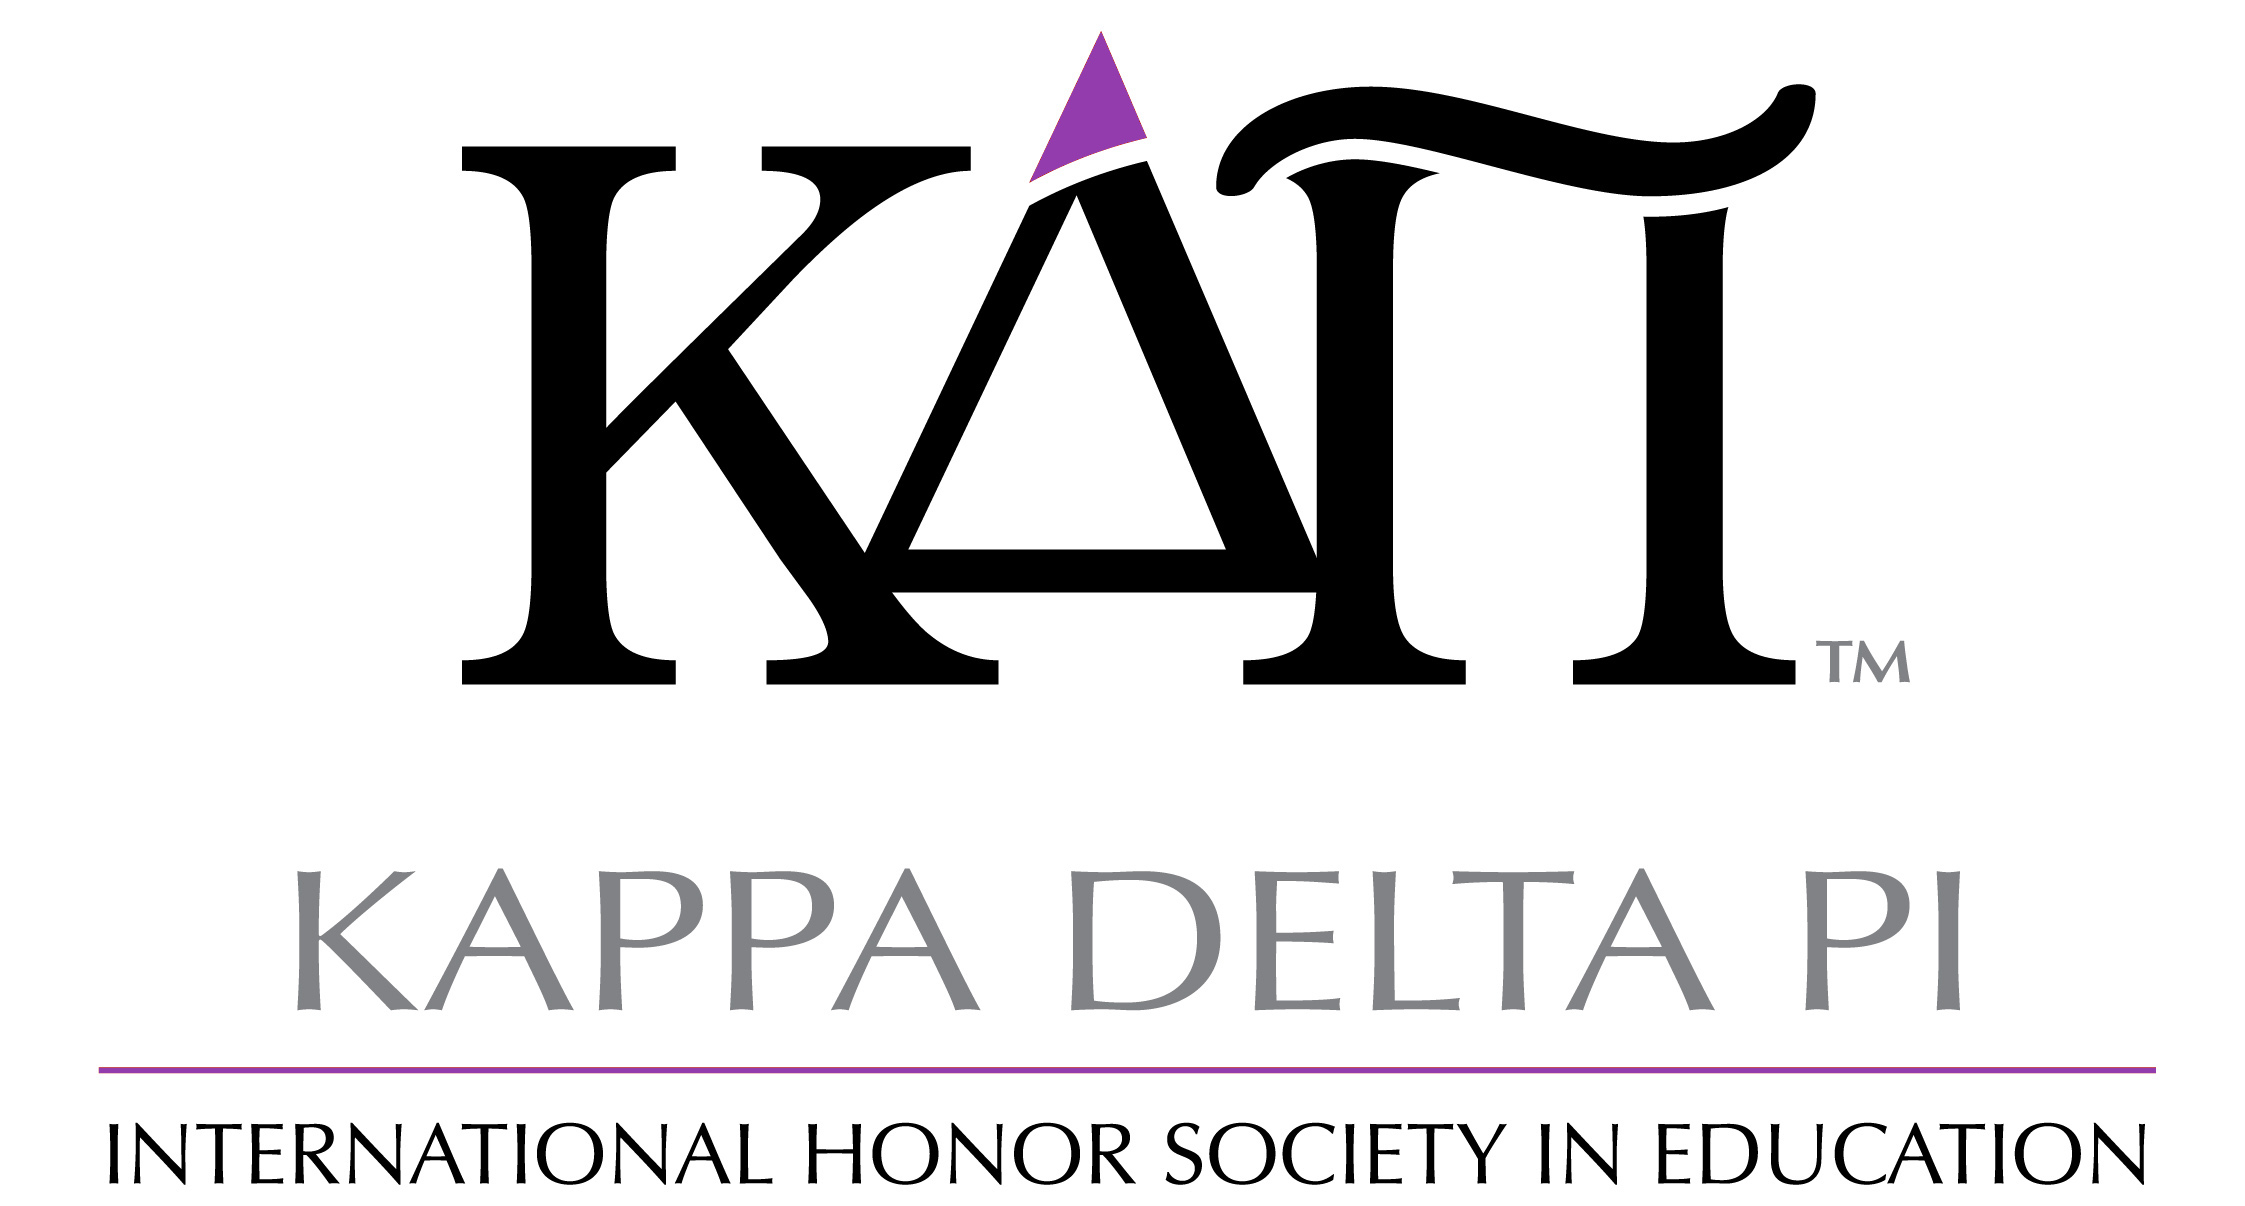 Kappa Delta Pi, International Honor Society in Education